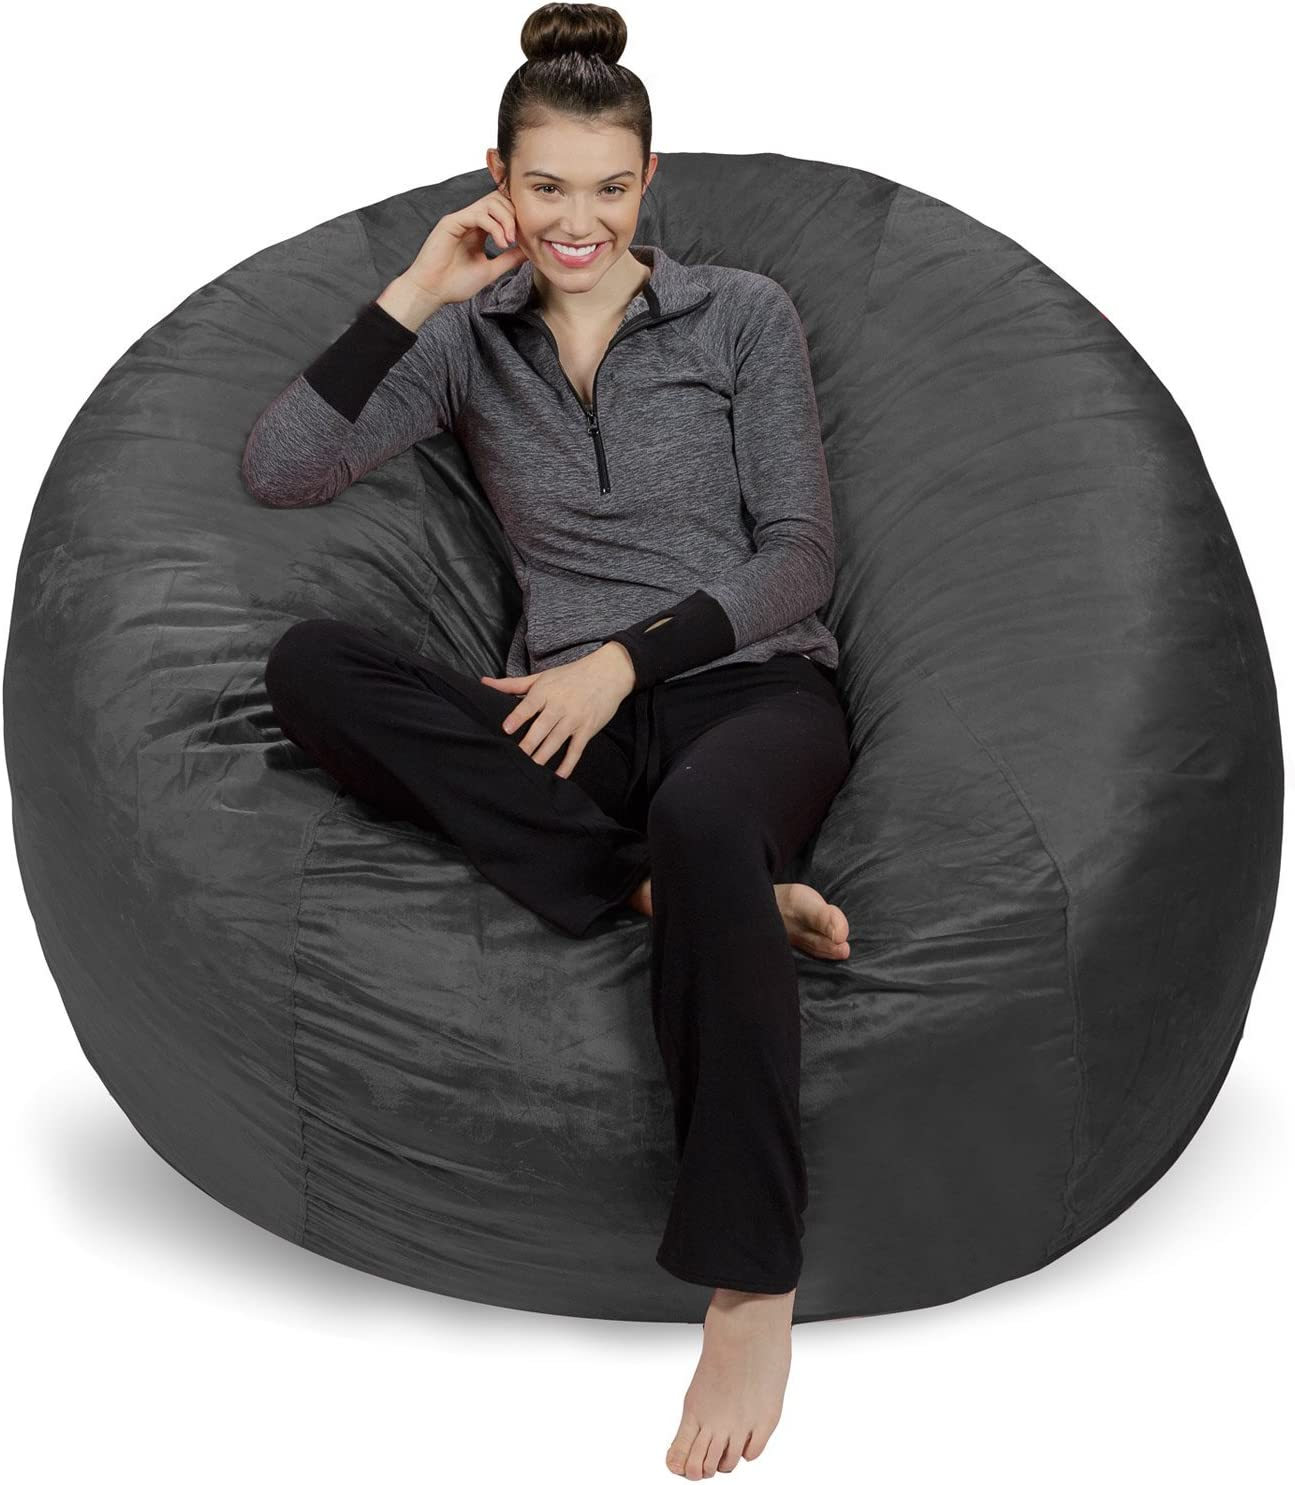 Sofa Sack - Plush Ultra Soft Bean Bags Chairs for Kids, Teens, Adults - Memory Foam Beanless Bag Chair with Microsuede Cover - Foam Filled Furniture for Dorm Room - Charcoal 6'